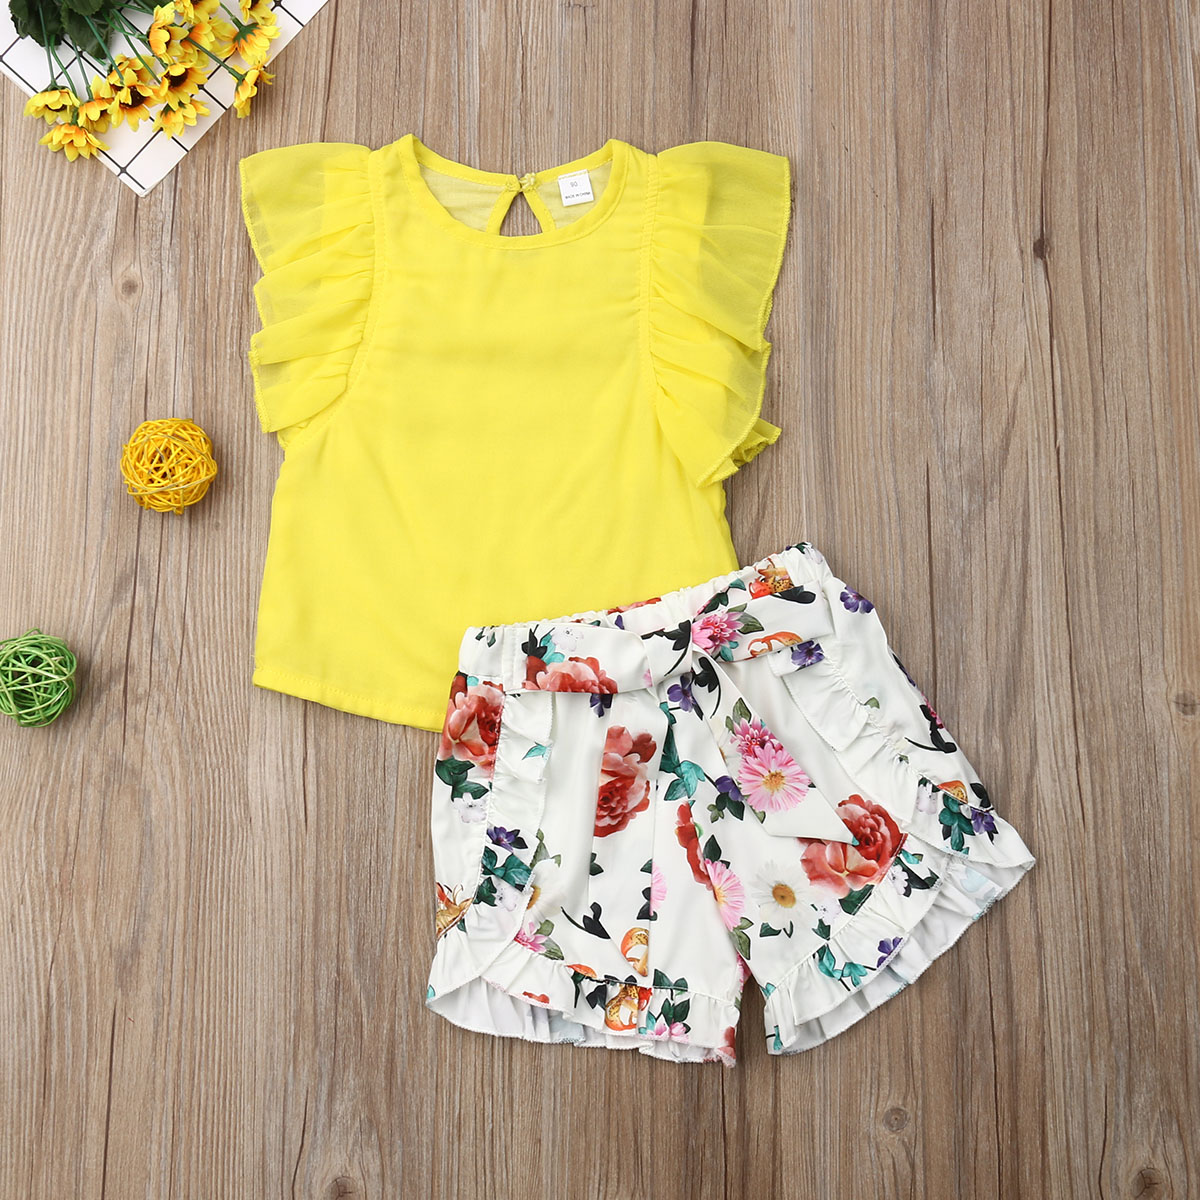 Pudcoco Summer Toddler Baby Girl Clothes Solid Color Sleeveless Ruffle Tops Flower Print Short Pants 2Pcs Outfits Casual Clothes